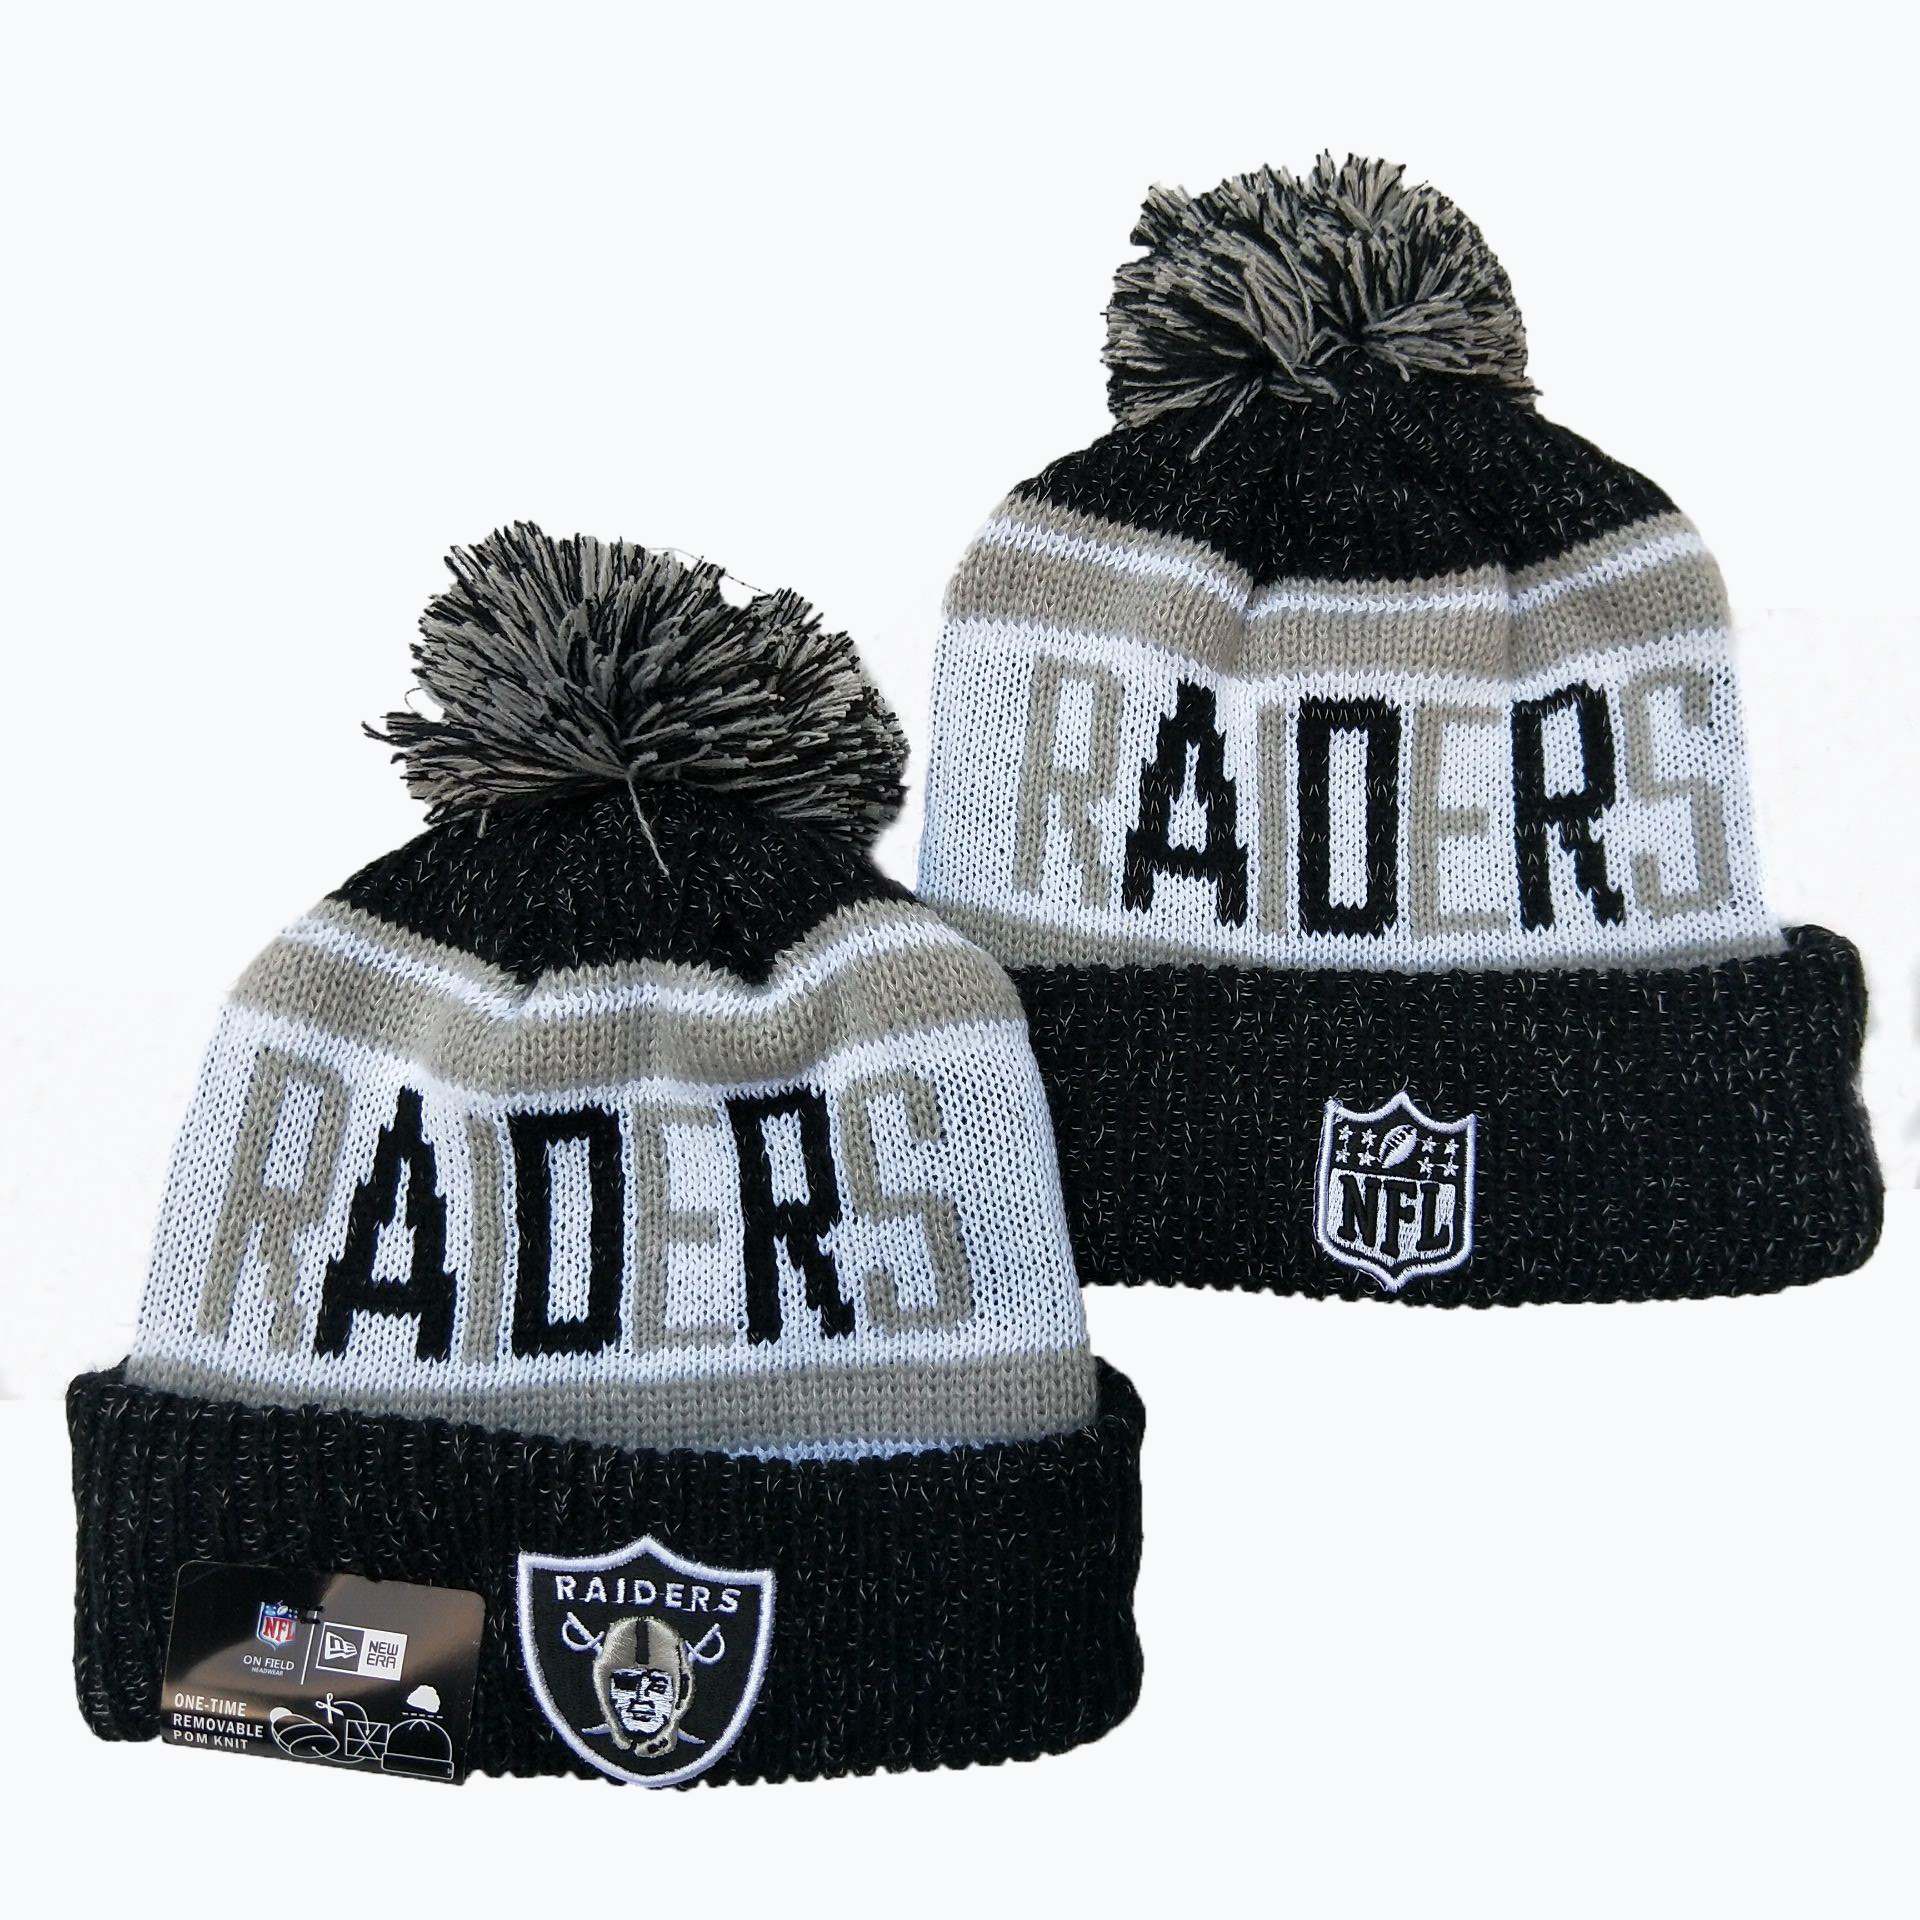 Raiders Team Logo Black Pom Knit Hat YD